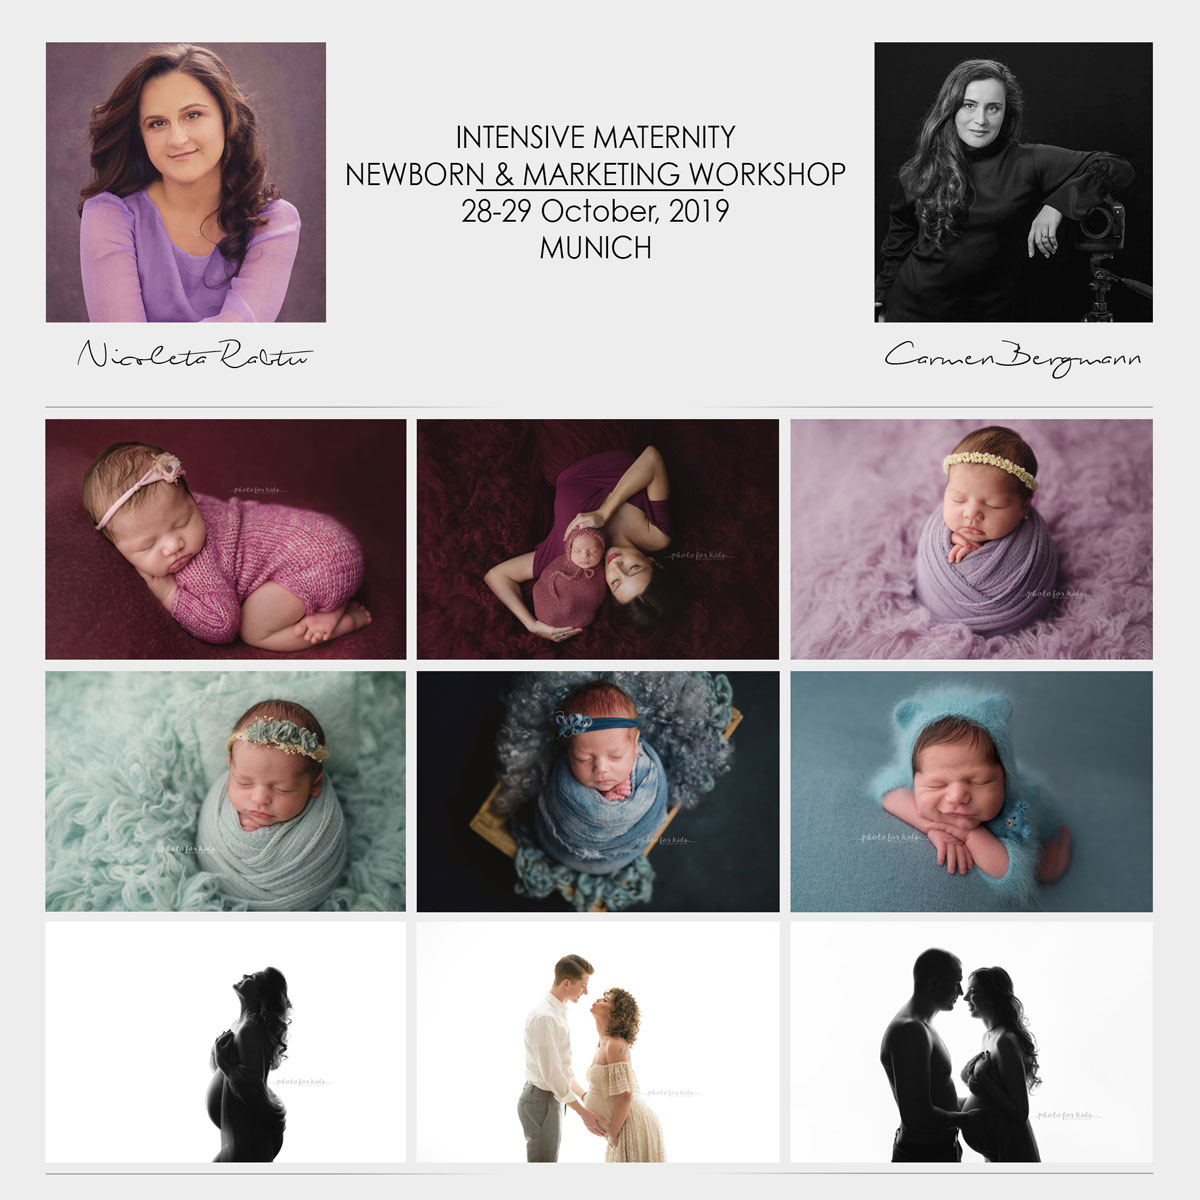 Newborn Maternity Photography and Marketing for Photographers Workshop Carmen-Bergmann Studio Munich by Nicoleta Raftu and Camern Bergmann